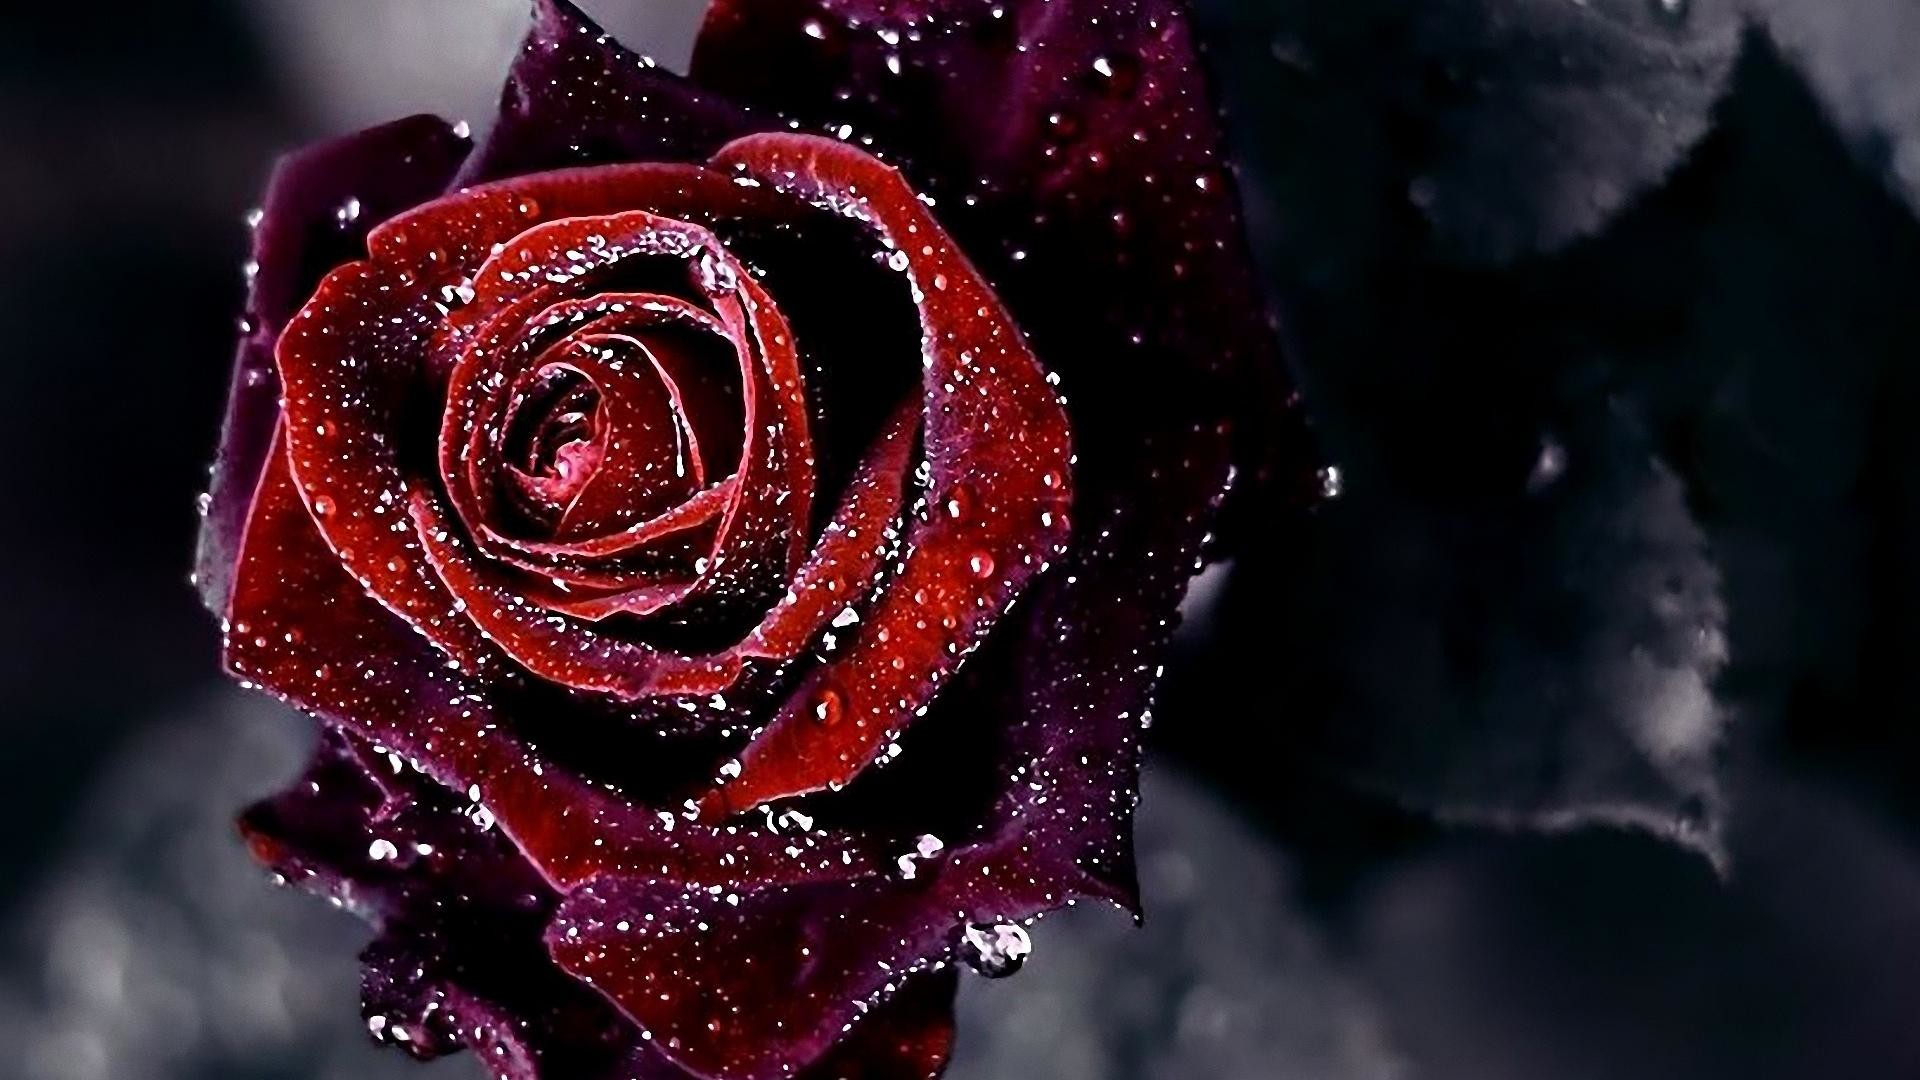 Black And Red Rose Wallpaper (63+ Images